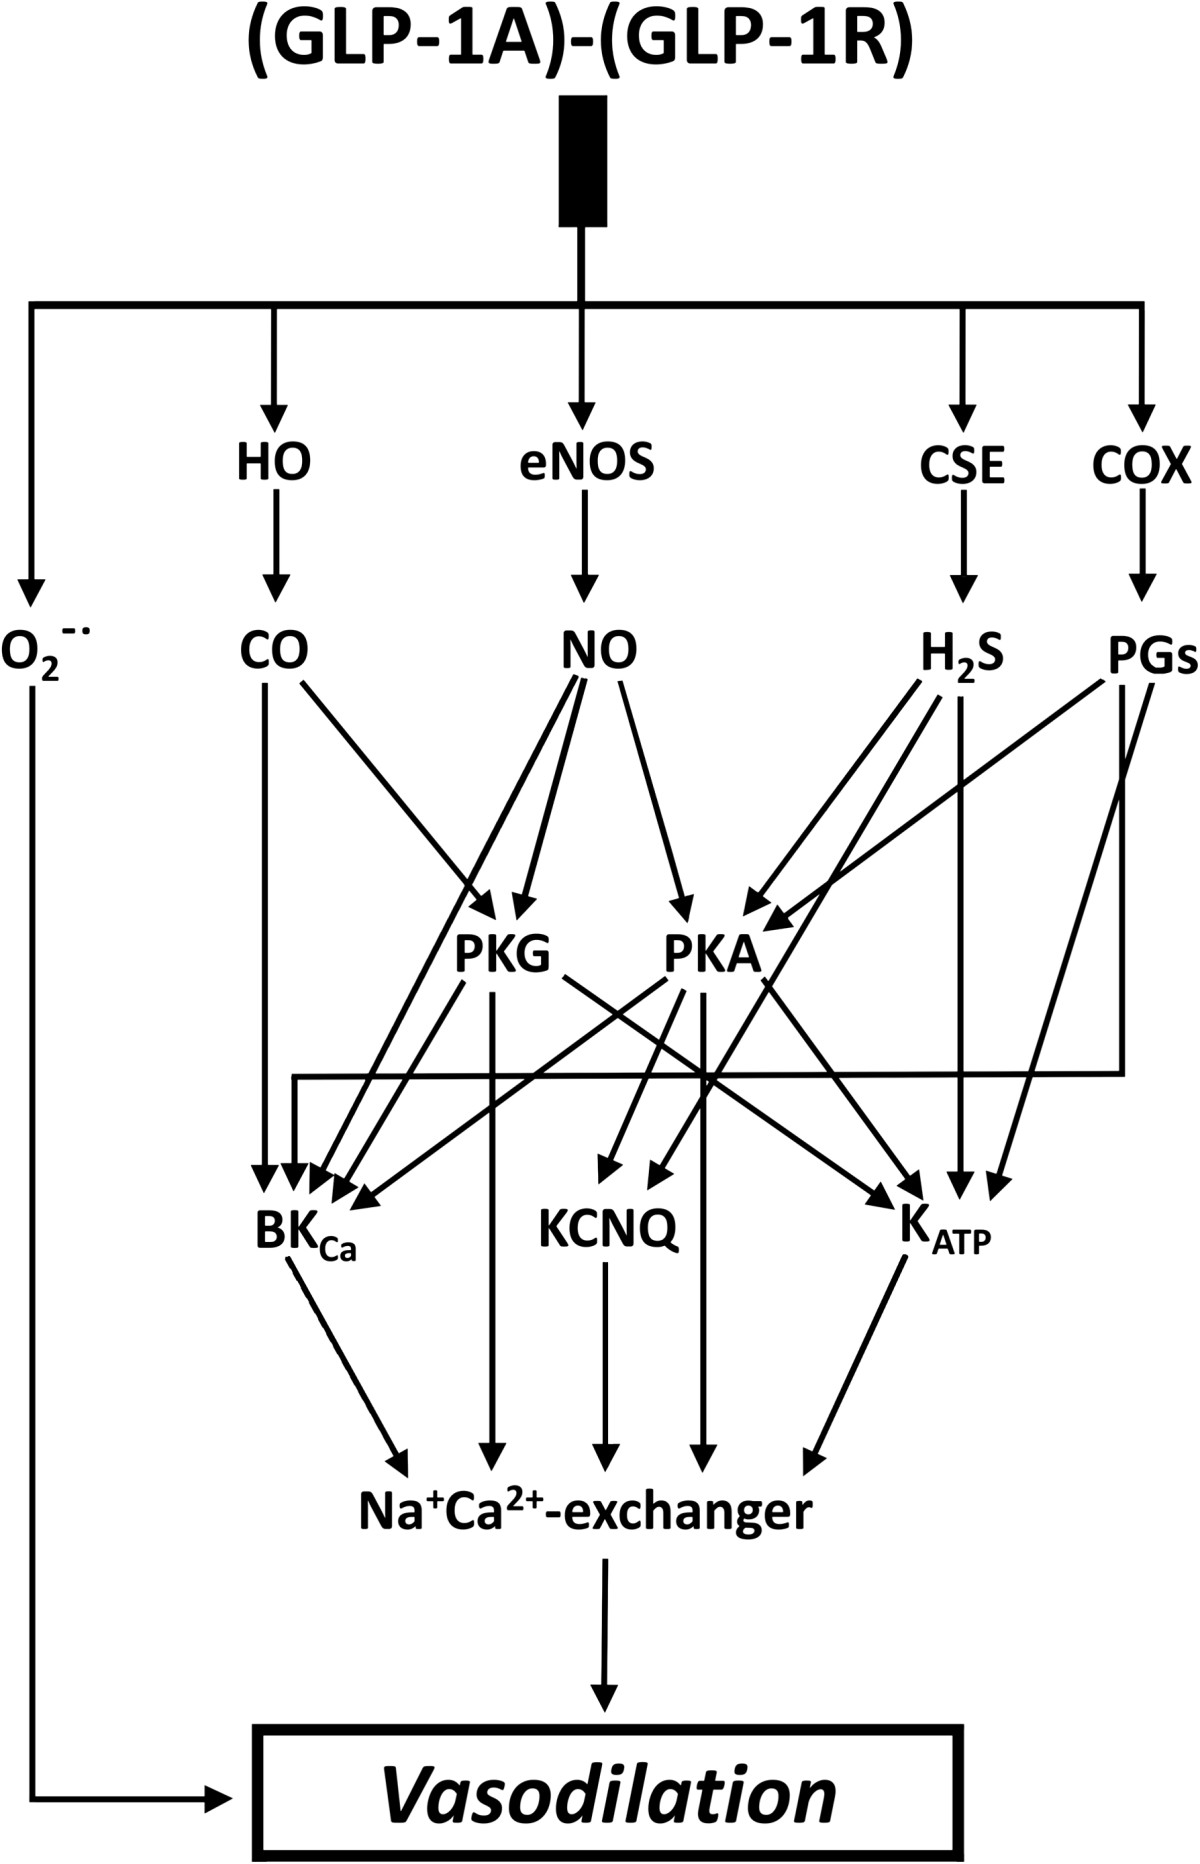 http://static-content.springer.com/image/art%3A10.1186%2F1475-2840-13-69/MediaObjects/12933_2013_Article_815_Fig7_HTML.jpg